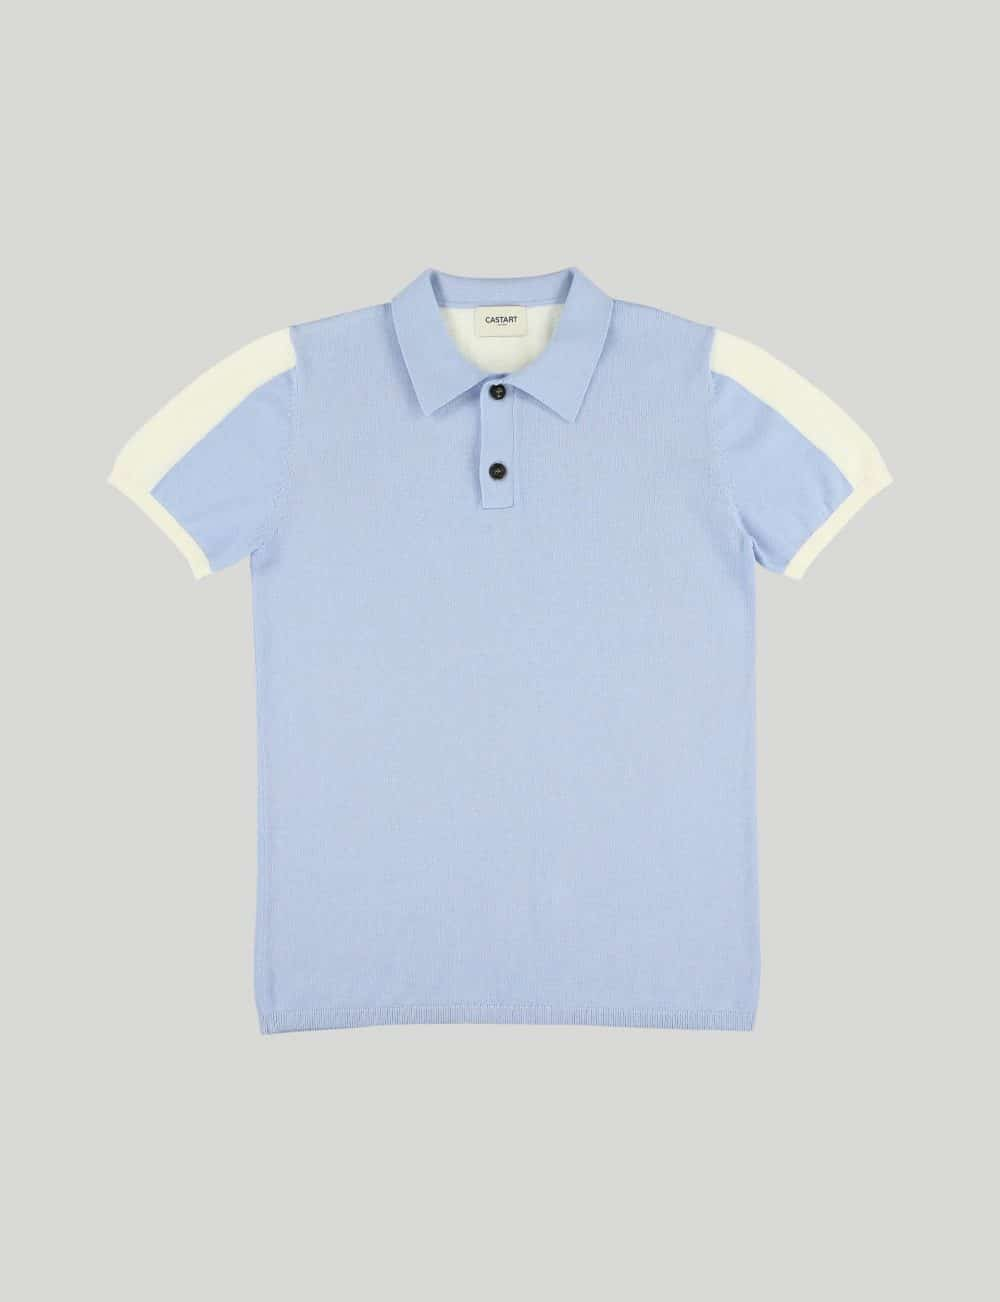 Castart - Topolino knitwear - Light Blue